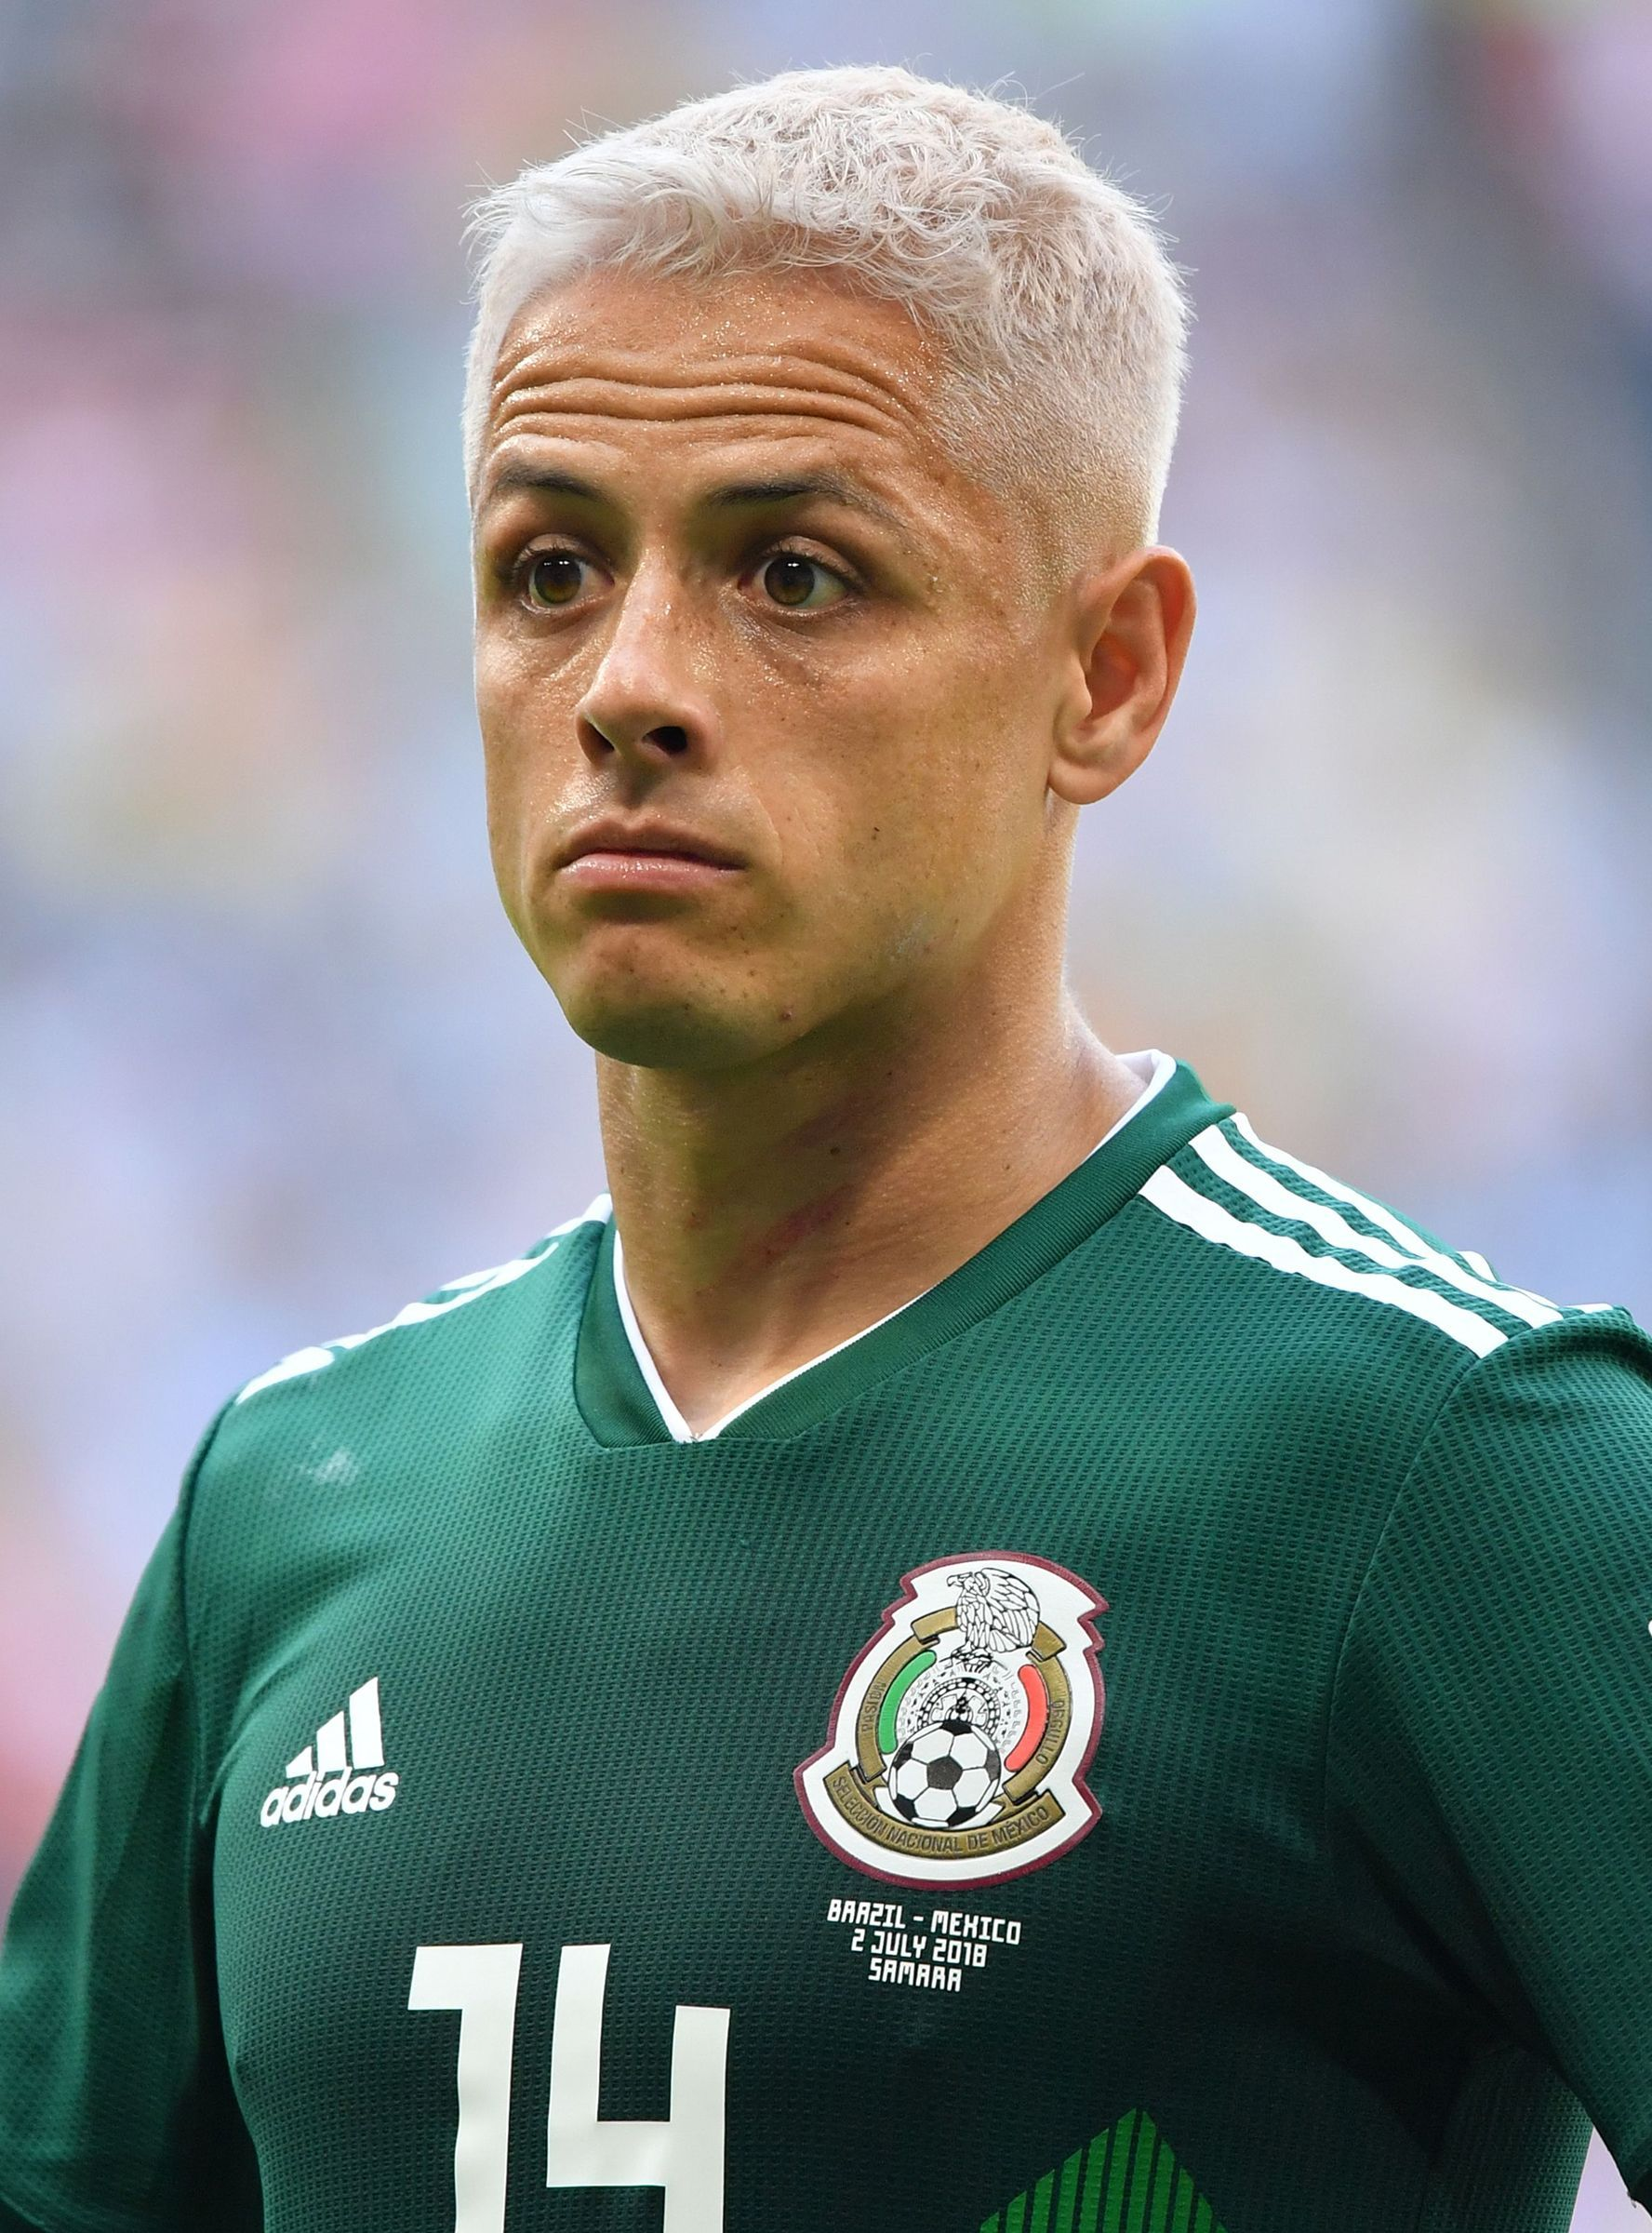 The Real Reason Soccer Players Bleach Their Hair For The World Cup Bleach Blonde How To Look Better Blonde With Pink